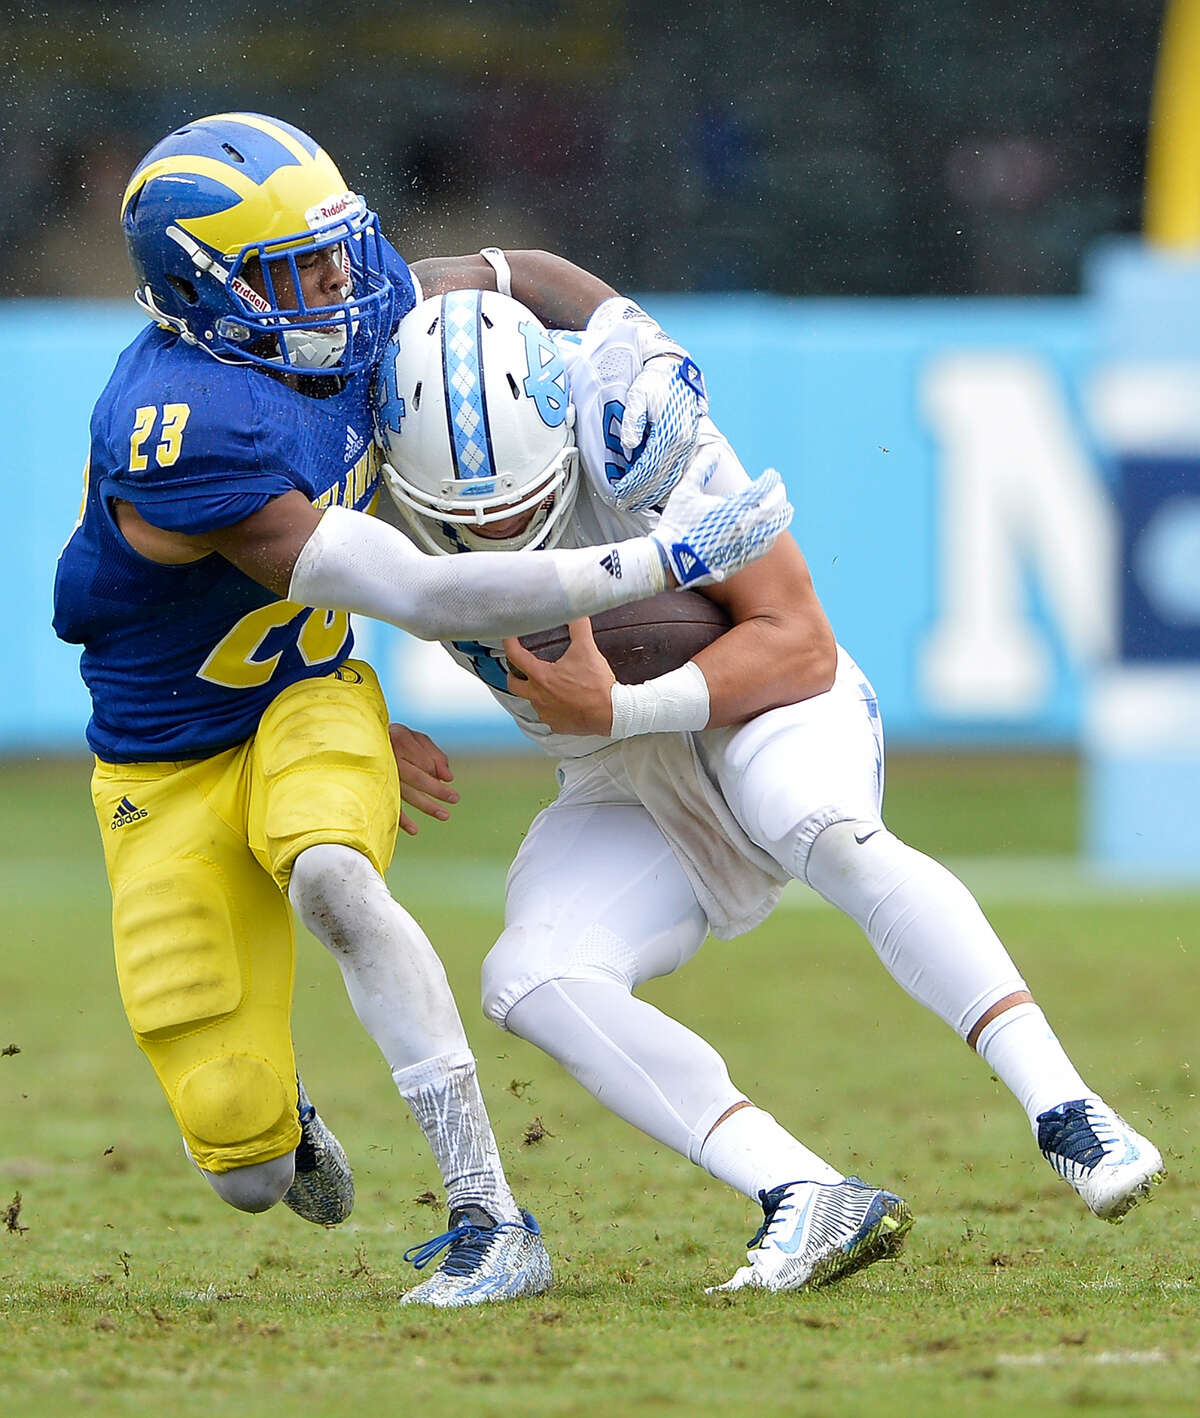 NASIR ADDERLEY, S, DELAWARE With Bradley McDougald being the only locked in starter at safety entering 2019, the Seahawks need more depth at the position. Delaware's Nasir Adderley (6 feet, 200 lb) is a prospect to watch. He may be the best, and most aggressive, safety in the Senior Bowl. Film shows that Adderley is a big-time hitter with strong ball tracking skills and elite closing speed. He's a solid run defender and his coverage ability stands out, too -- he began his college career as a cornerback. Adderley is the cousin of former NFL great Herb Adderley, who was a four-time All-Pro cornerback and three-time Super Bowl champ during a 12-year career.